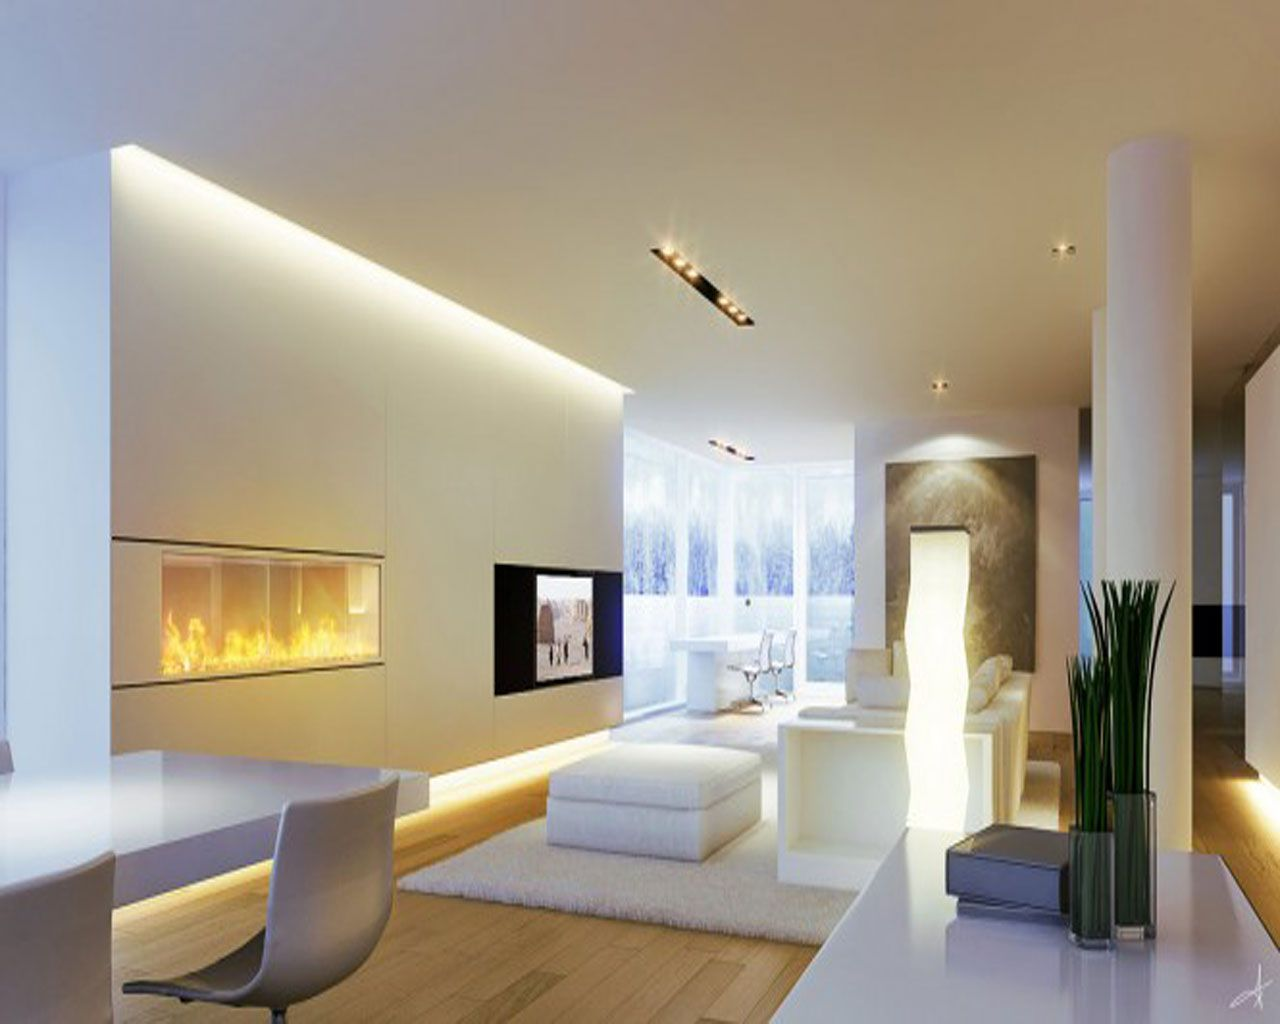 Extraordinary living room lighting design ideas inspiring for Led lighting ideas for living room